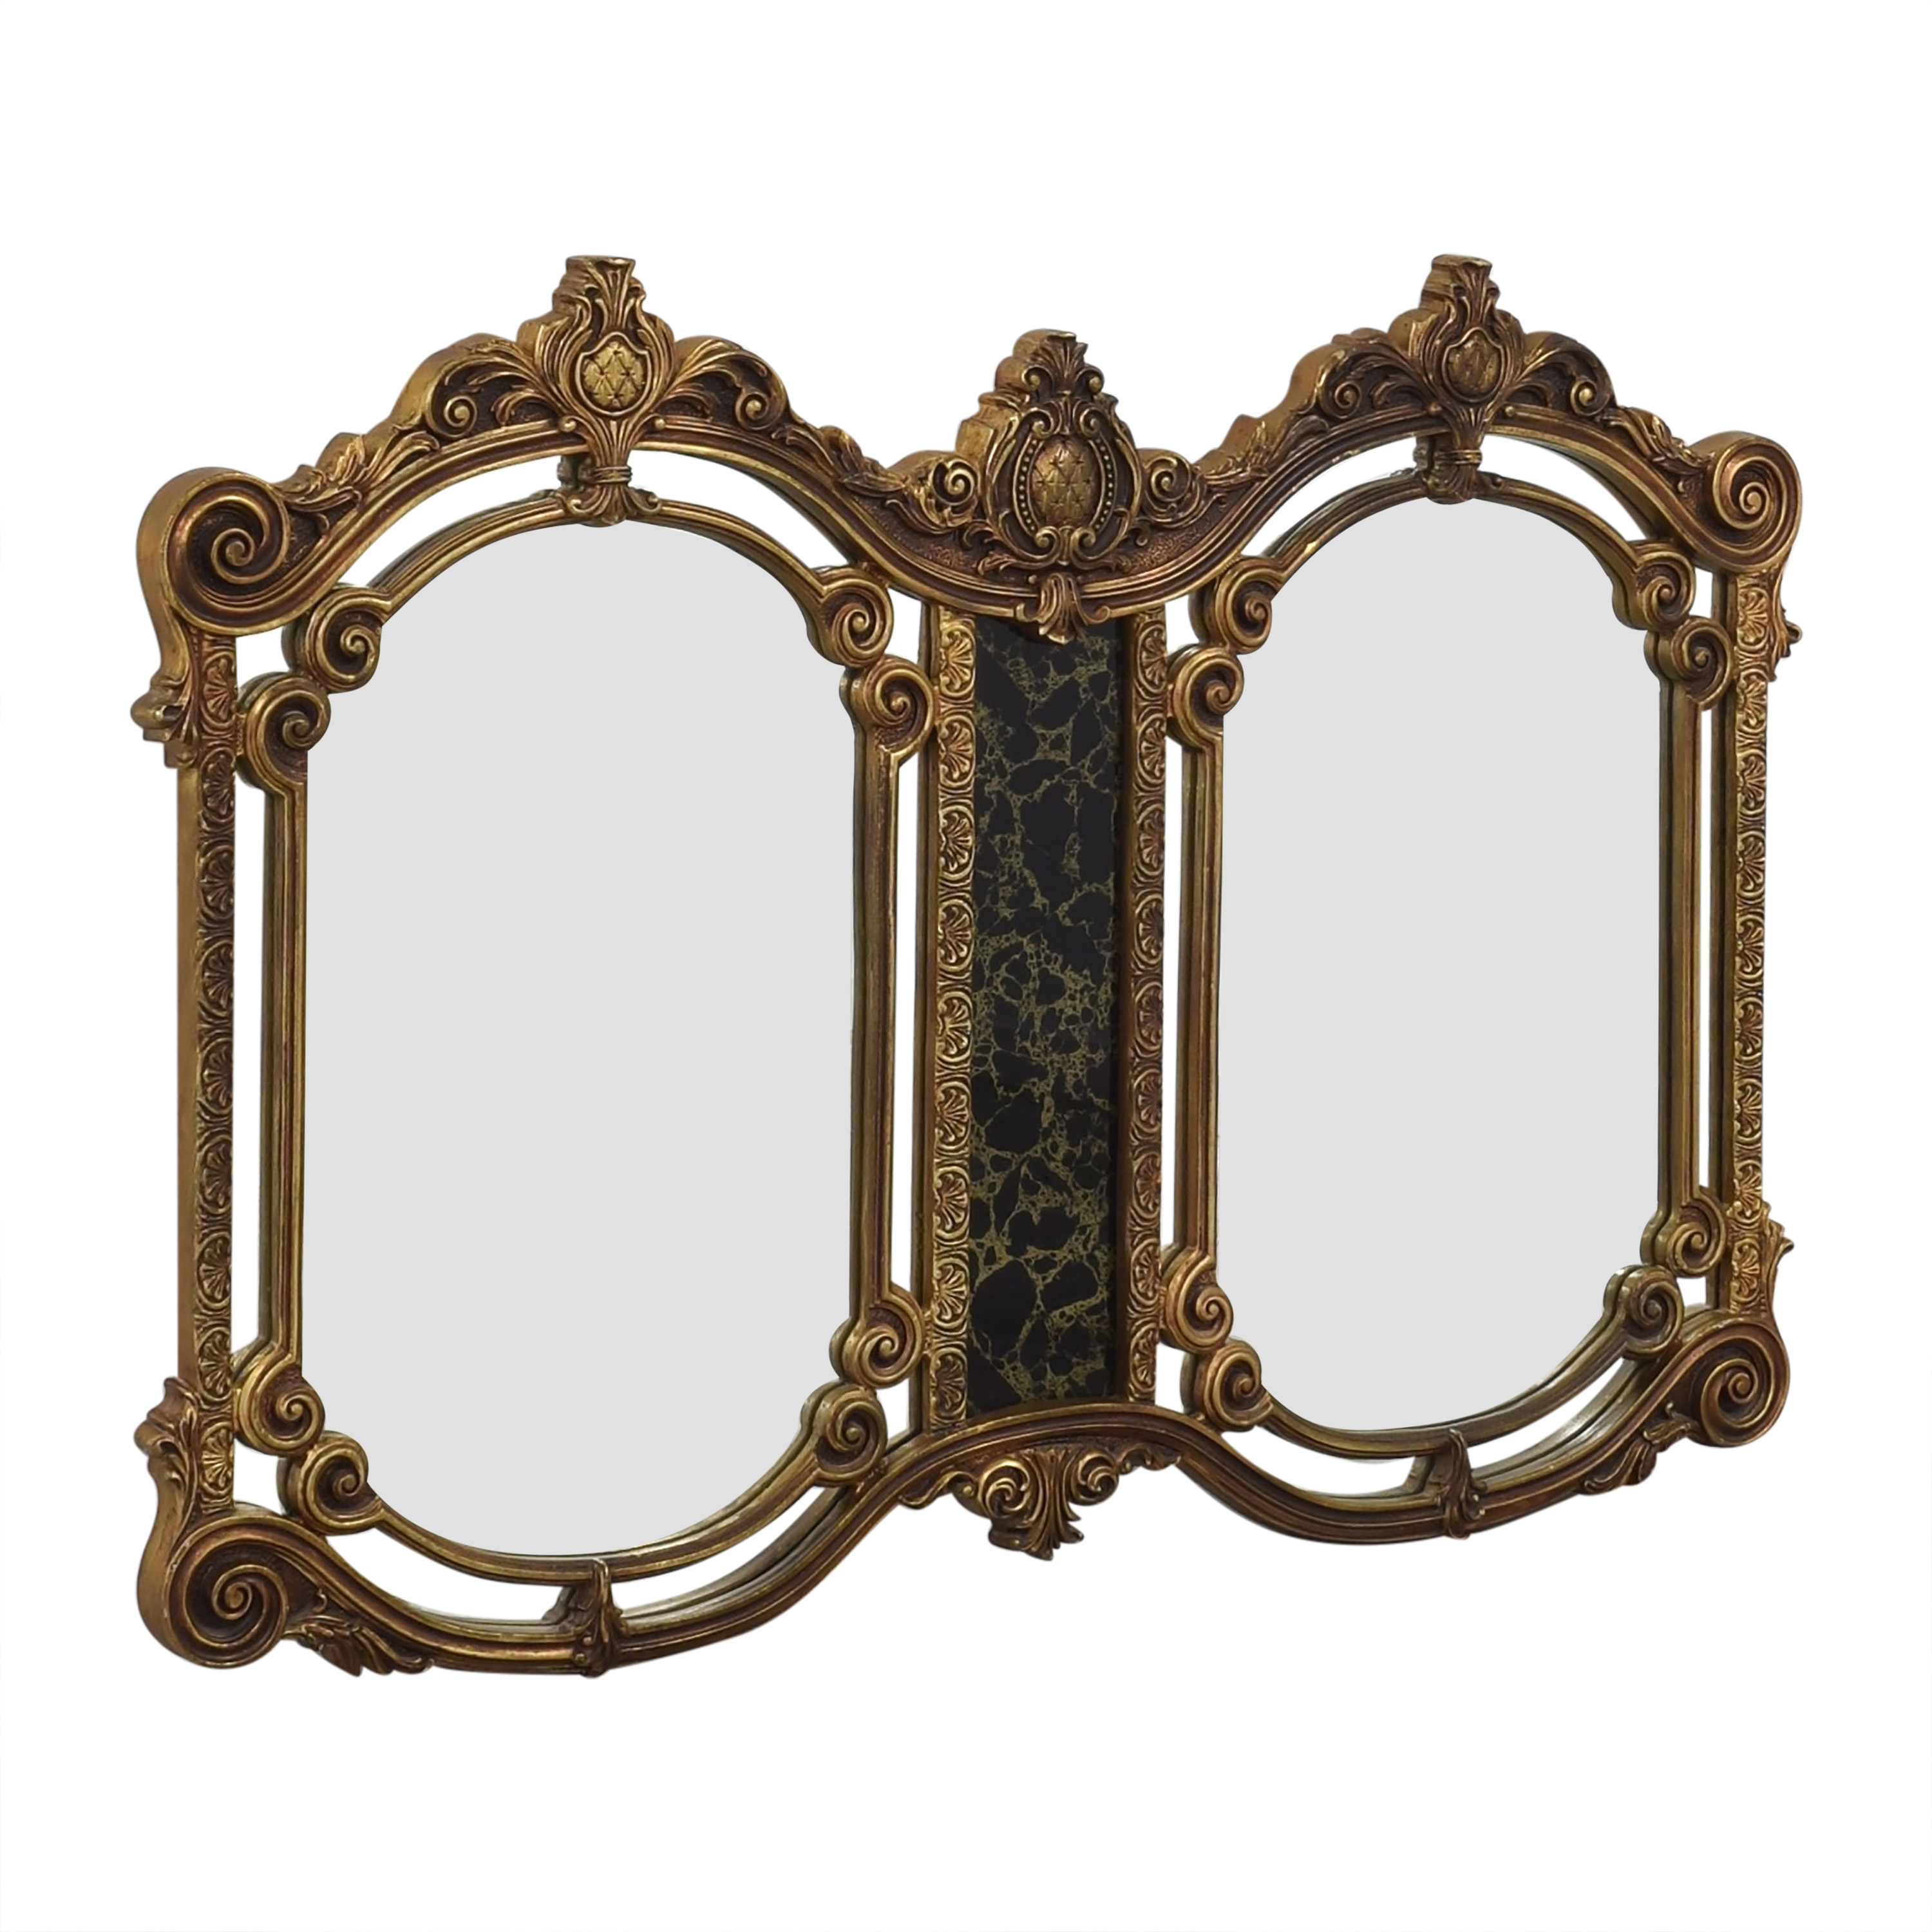 buy Union City Mirror & Table Co. Union City Decorative Double Wall Mirror online